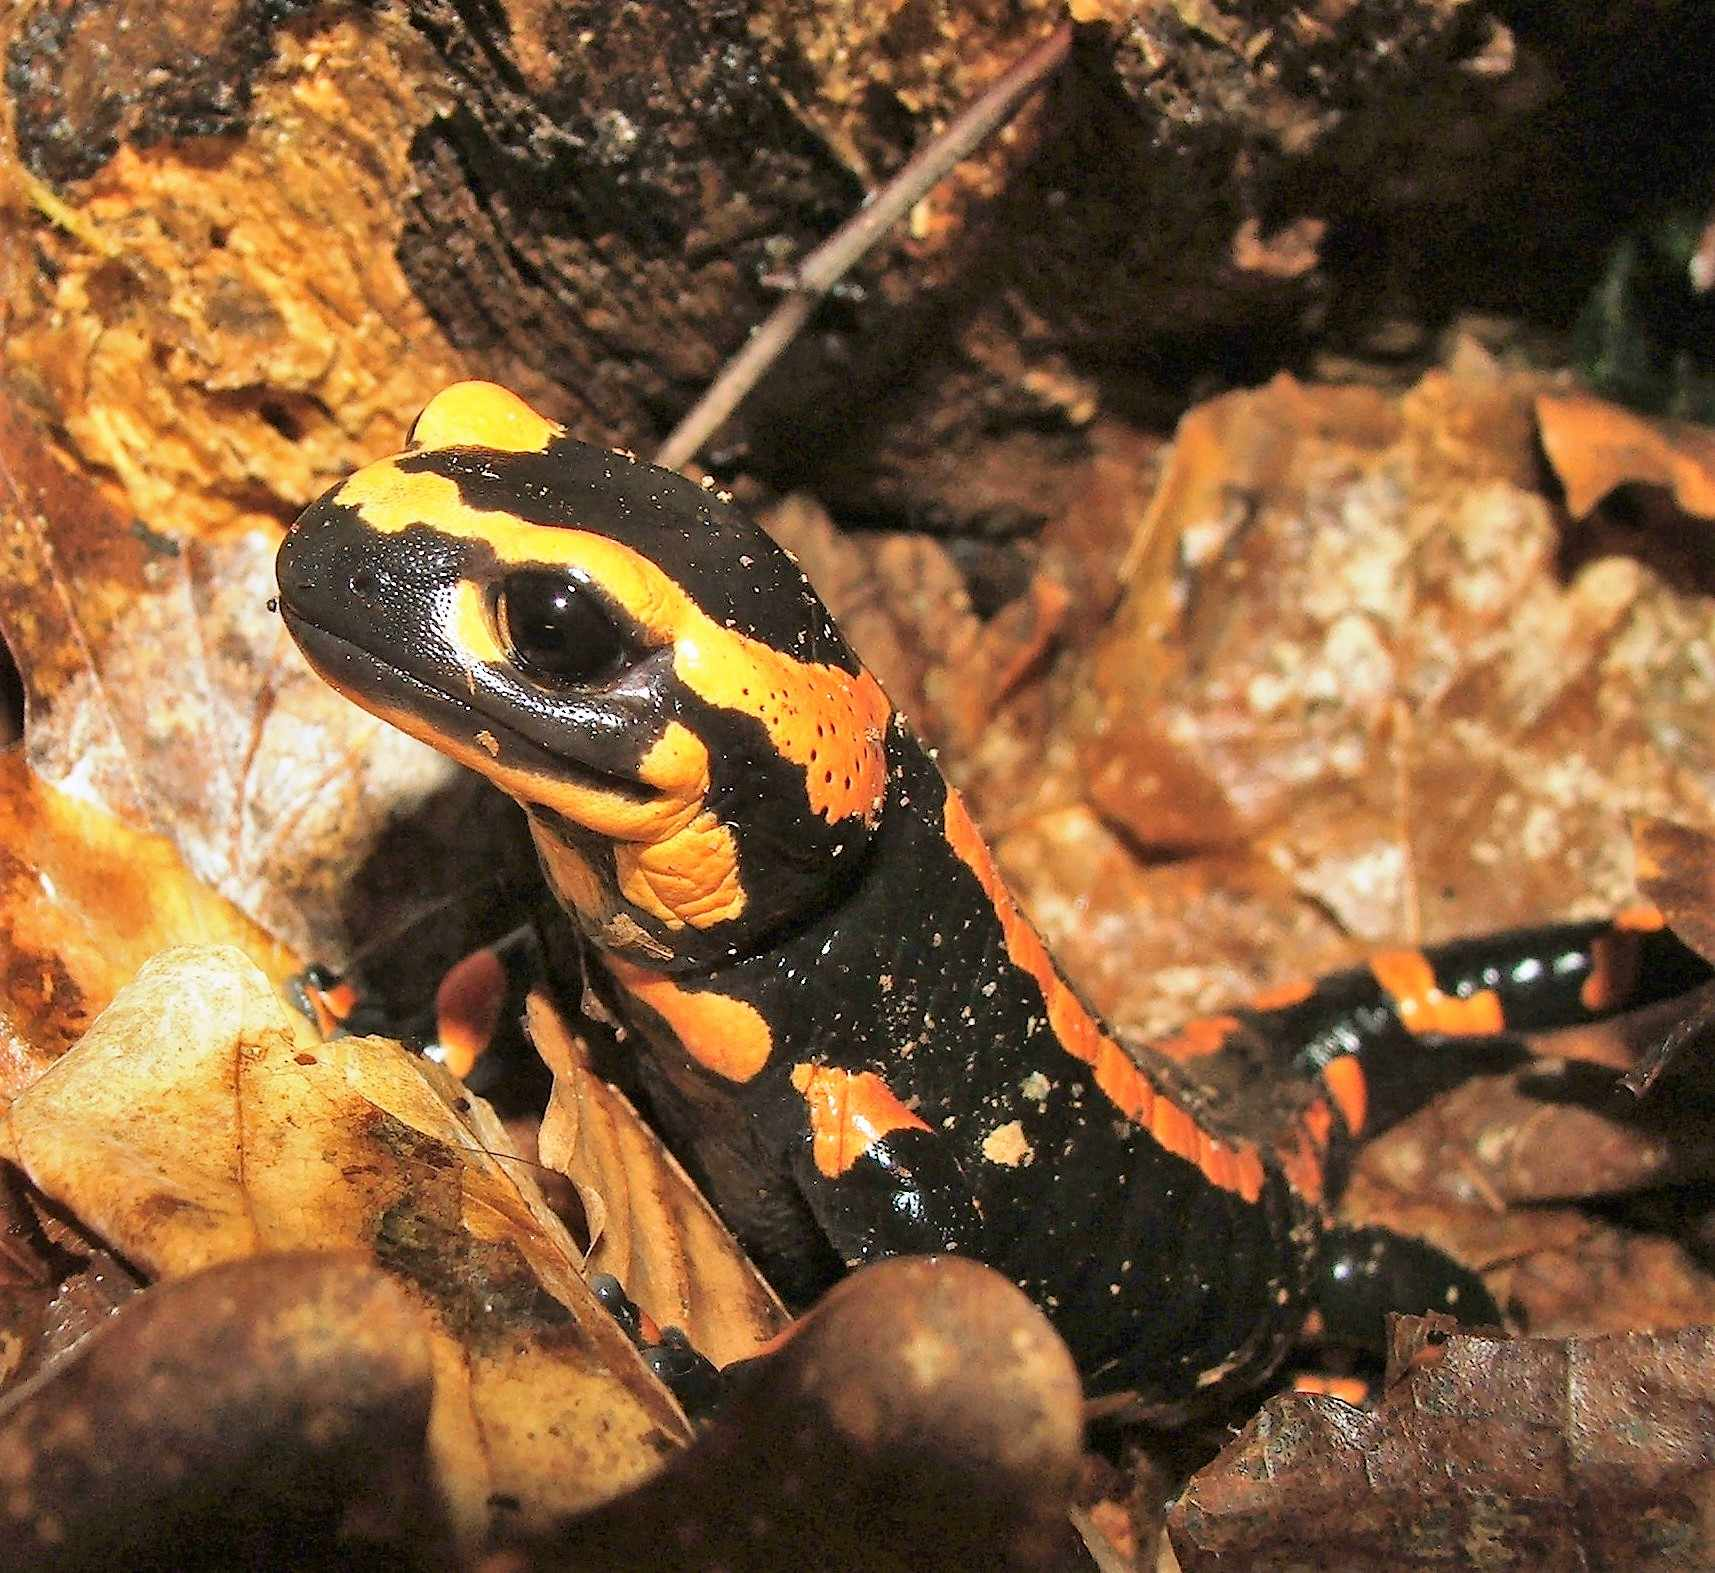 Fire salamanders in one monitored population have declined by 99 per cent due to the Bsal infection © B. Tapley / ZSL